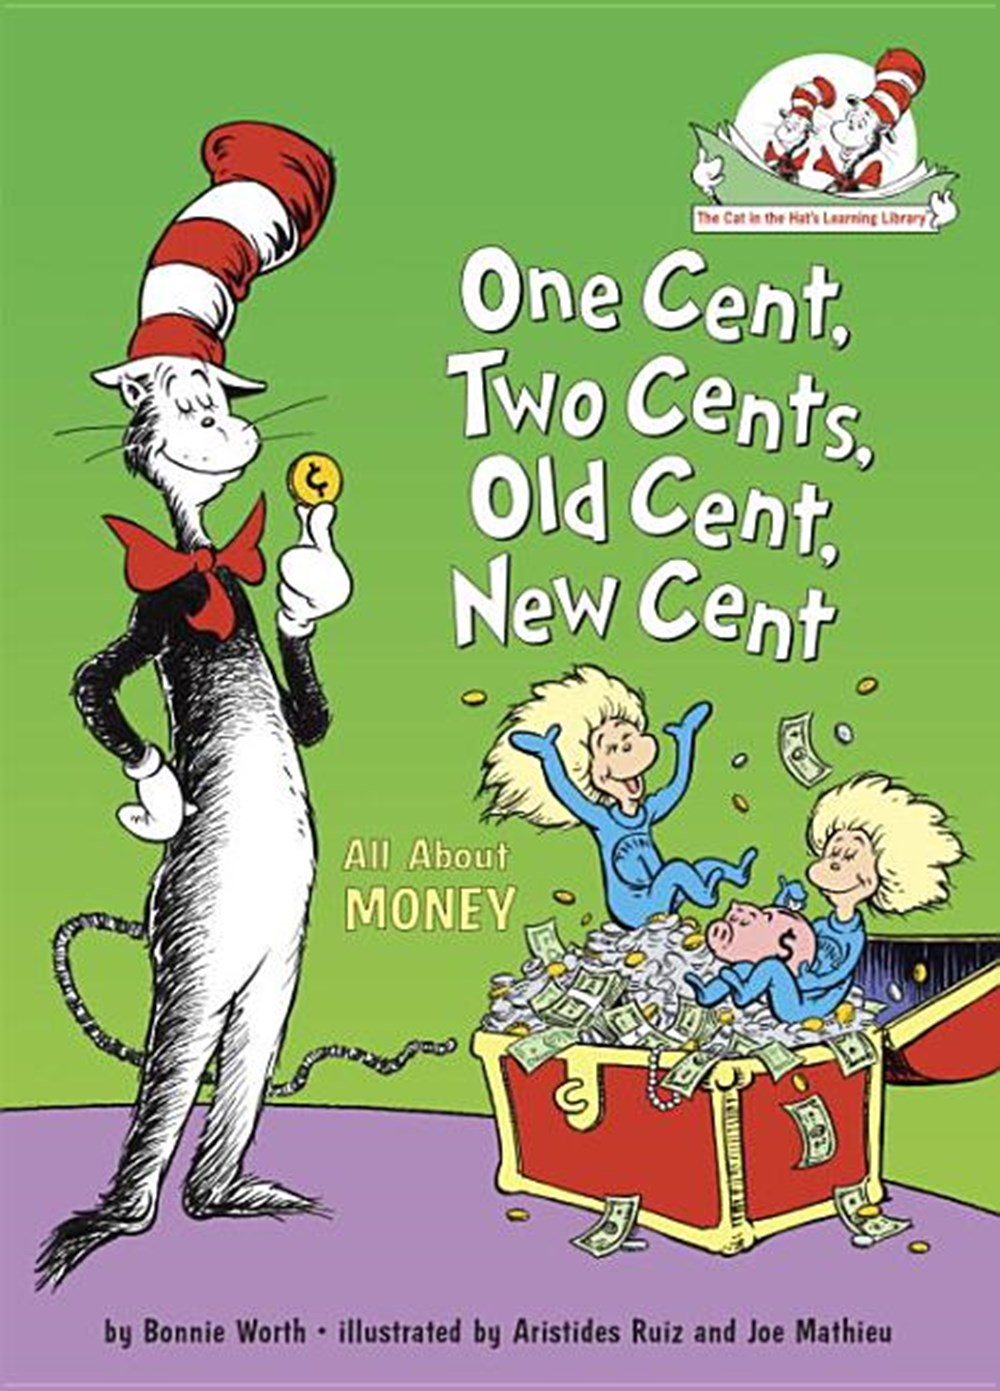 One Cent, Two Cents, Old Cent, New Cent All about Money